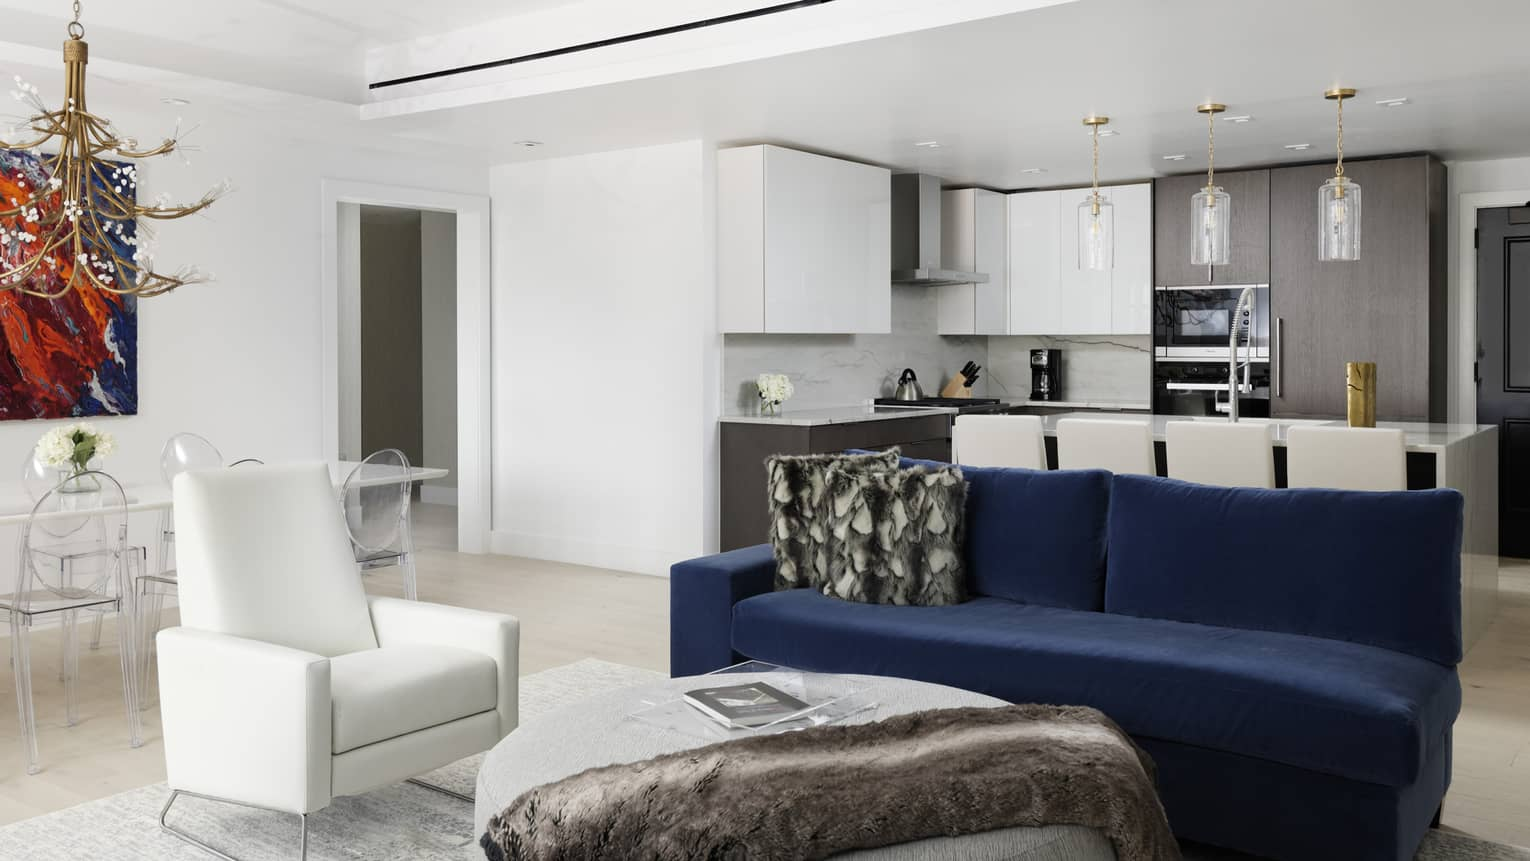 Living room with white walls and ceiling, dark blue sofa, white chair, kitchen in background